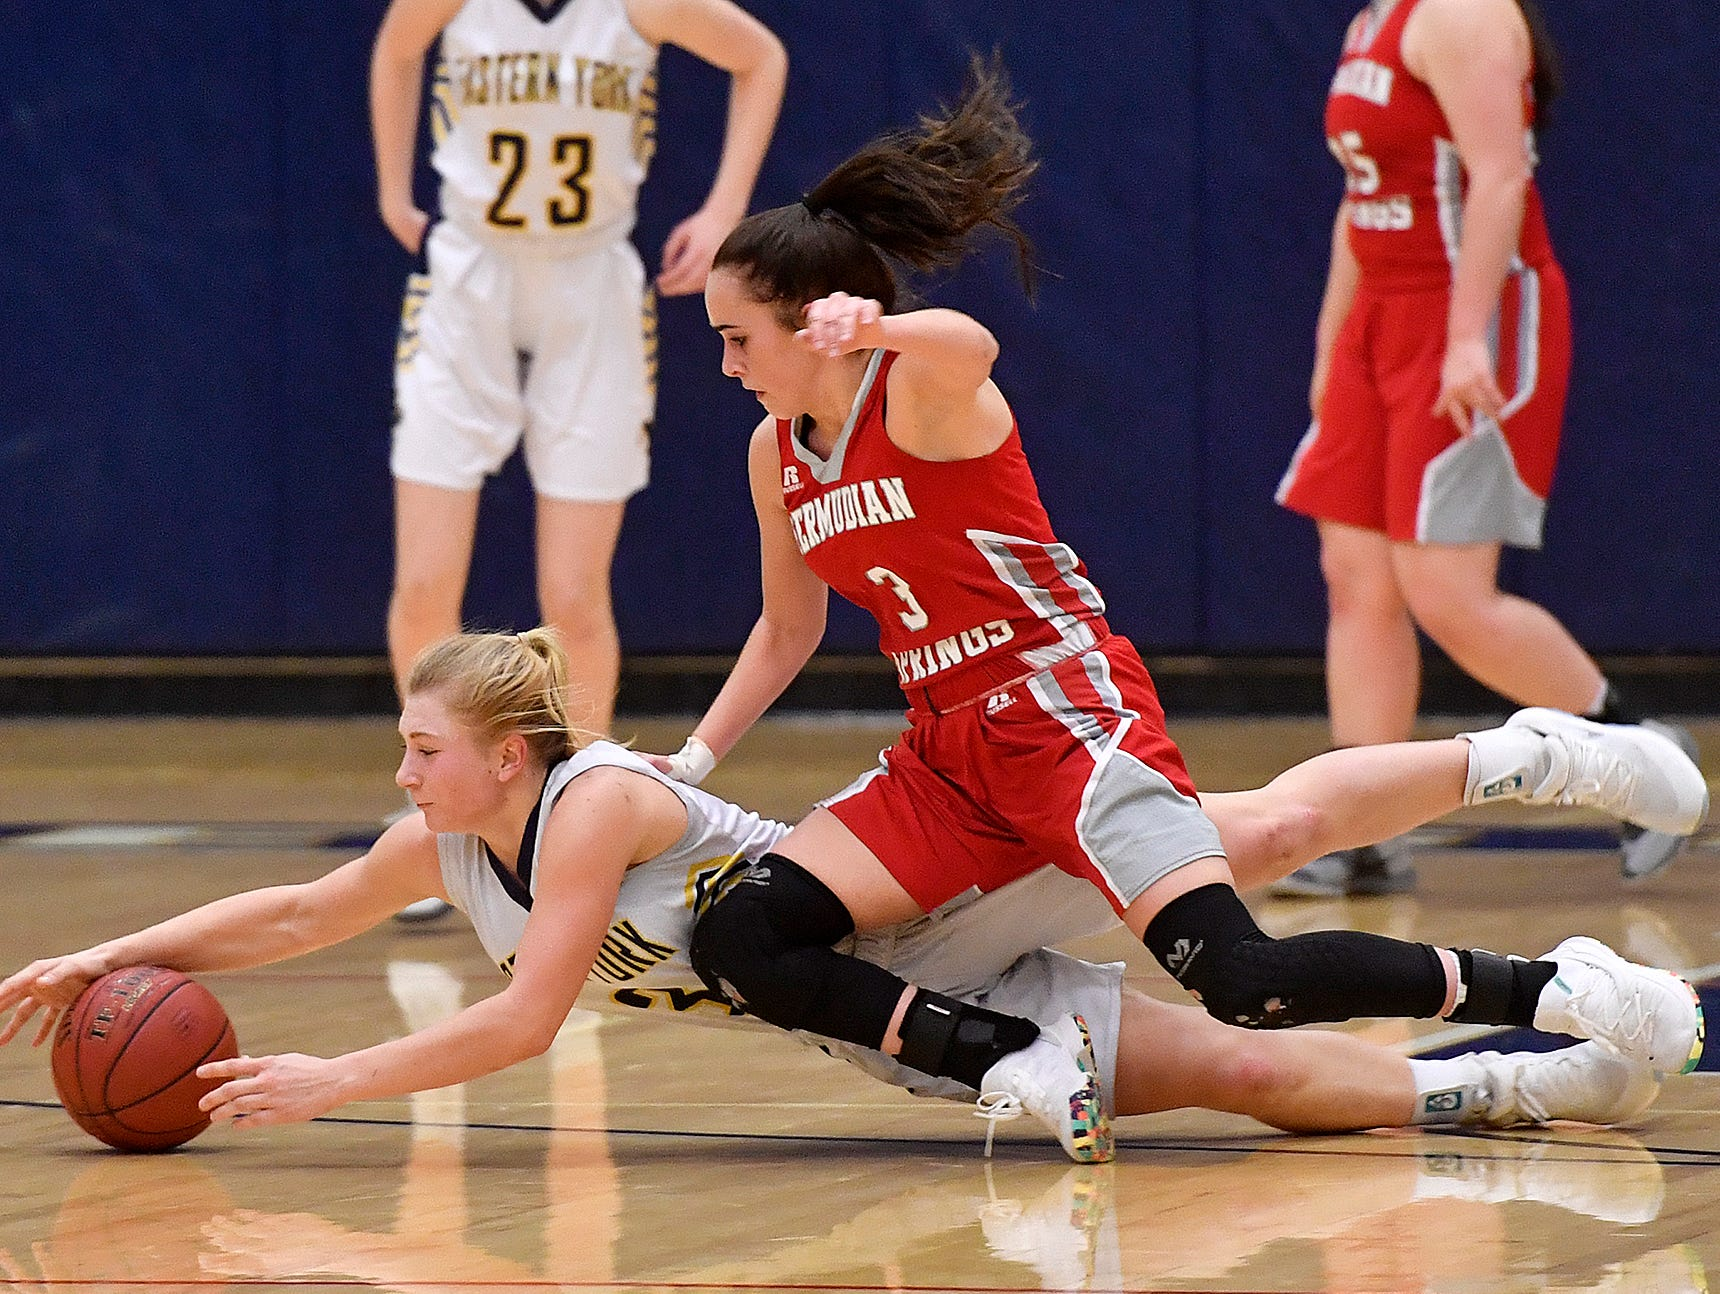 Bermudian Springs faces Eastern York in the District 3 Class 4-A fifth place basketball game, Thursday, Feb. 28, 2019.John A. Pavoncello photo